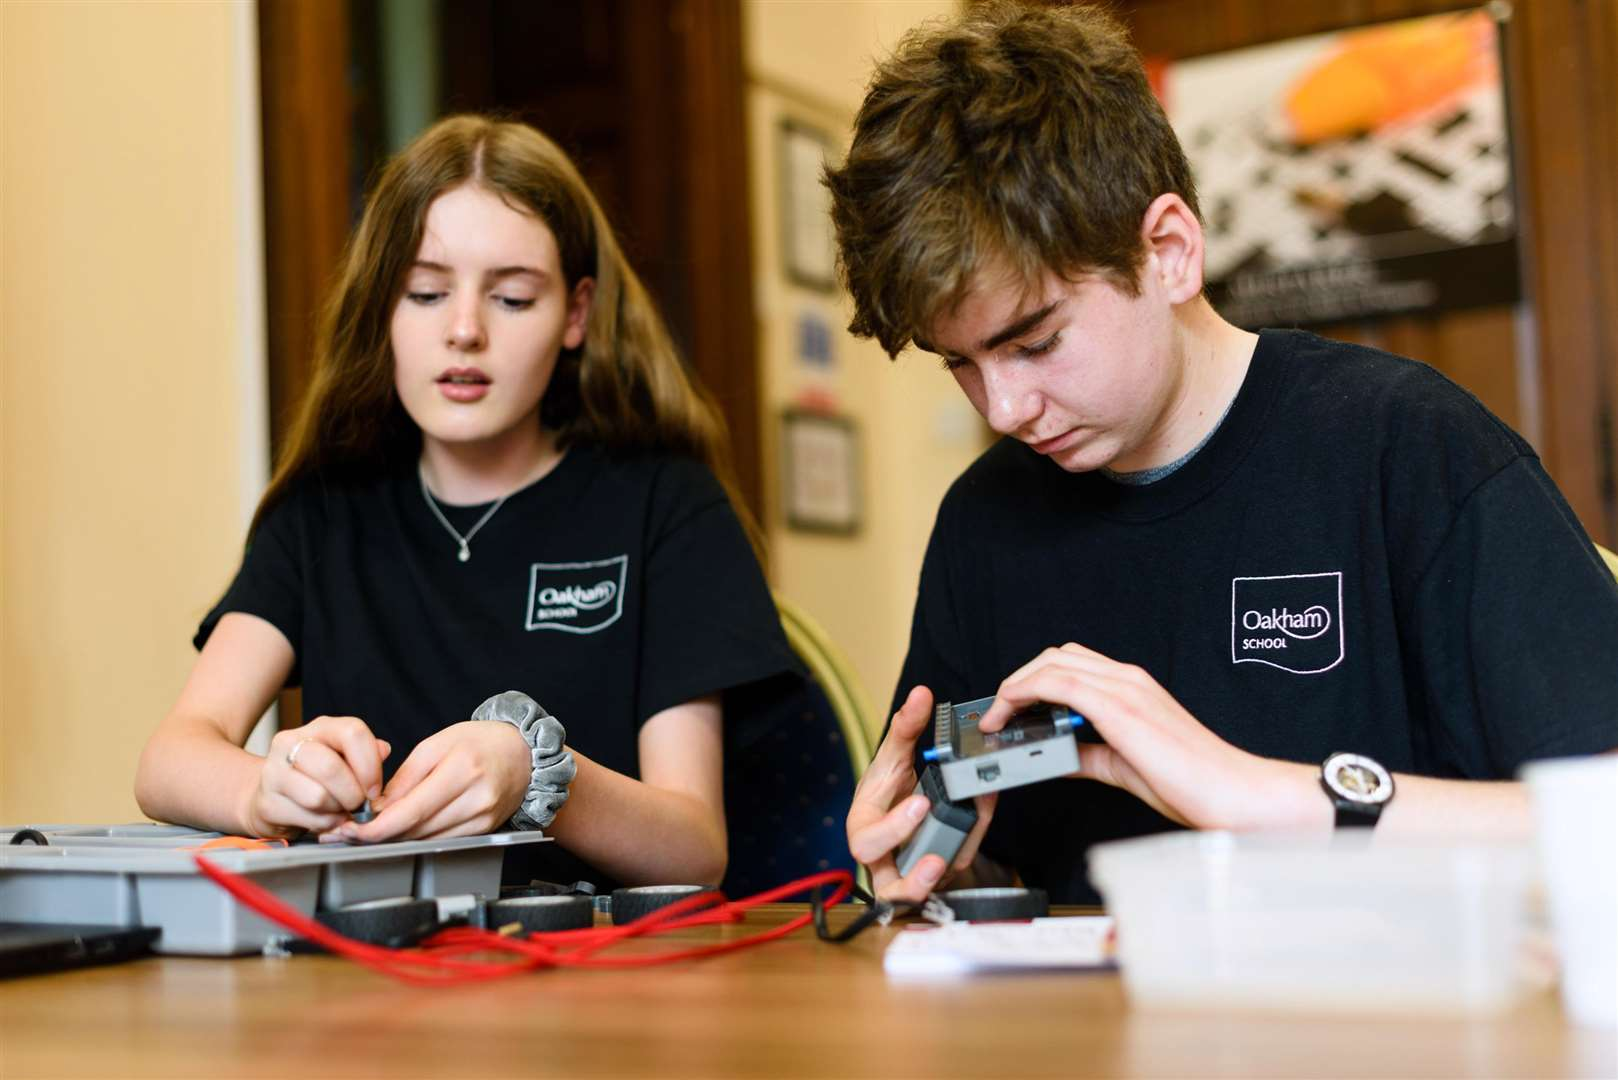 Hackathon 2018 at Beaumanor Hall, Leicestershire Photos: Elli Dean Photography